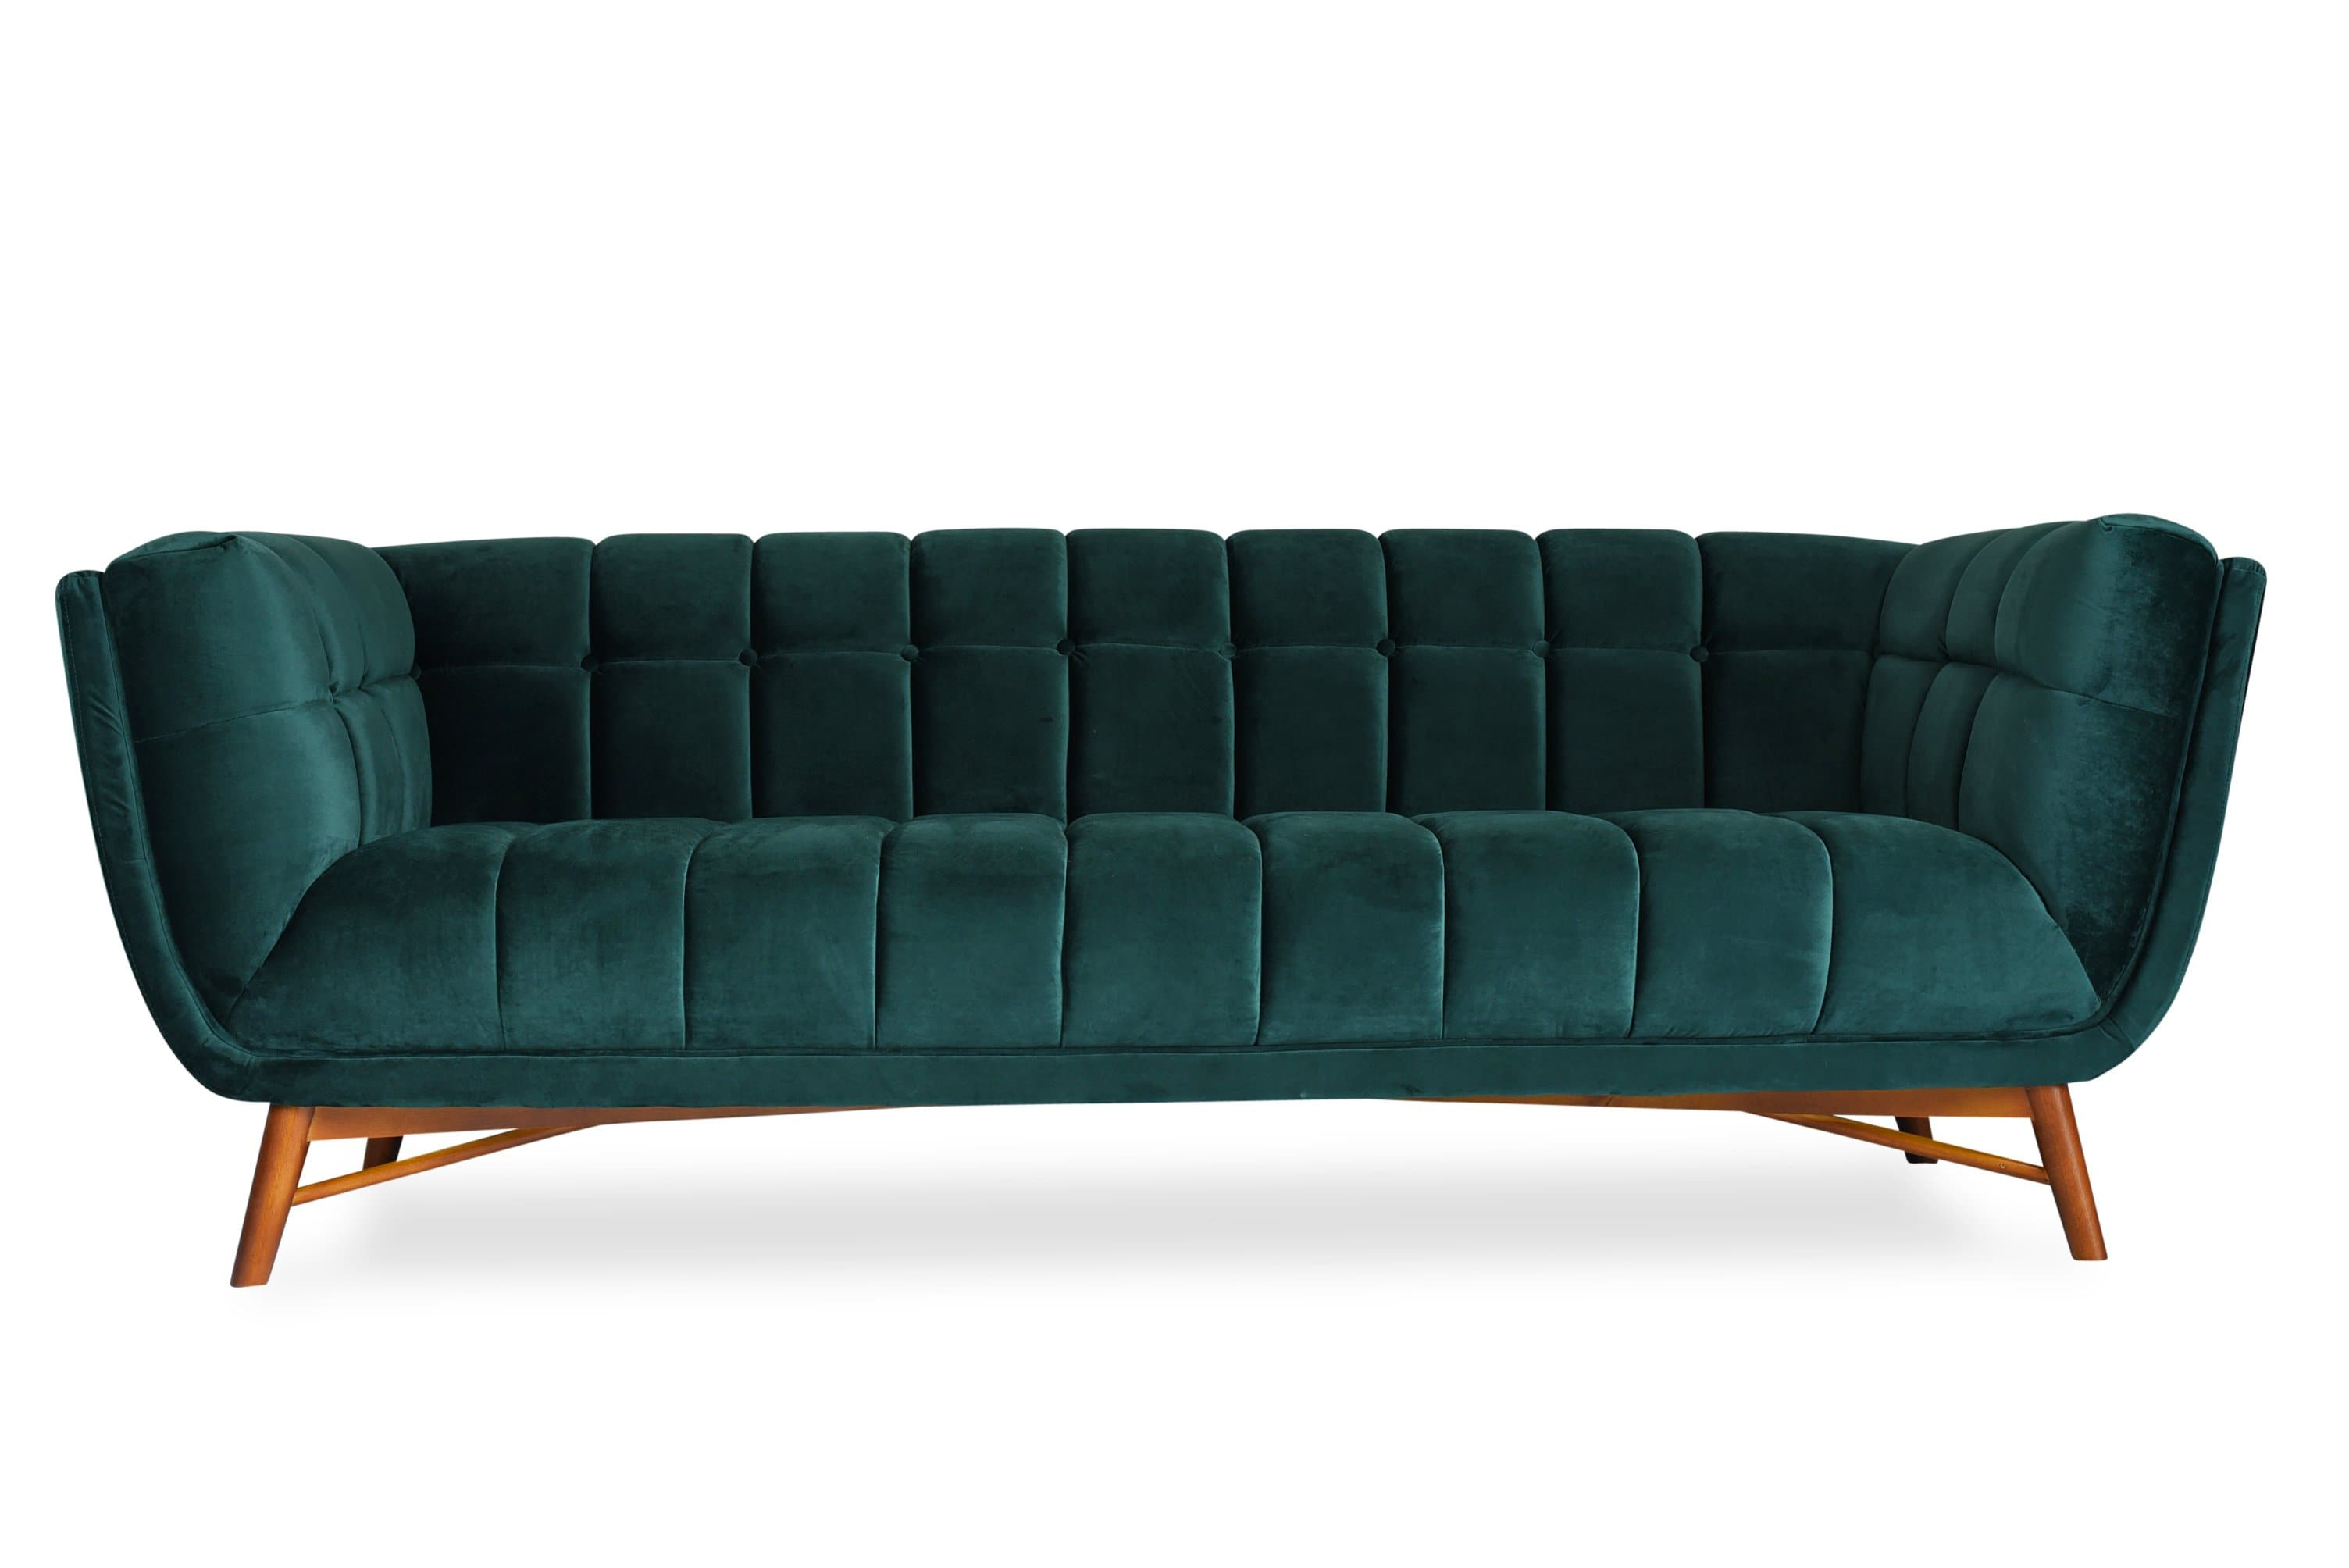 Tribeca Velvet Sofa - Edloe Finch Furniture Co.